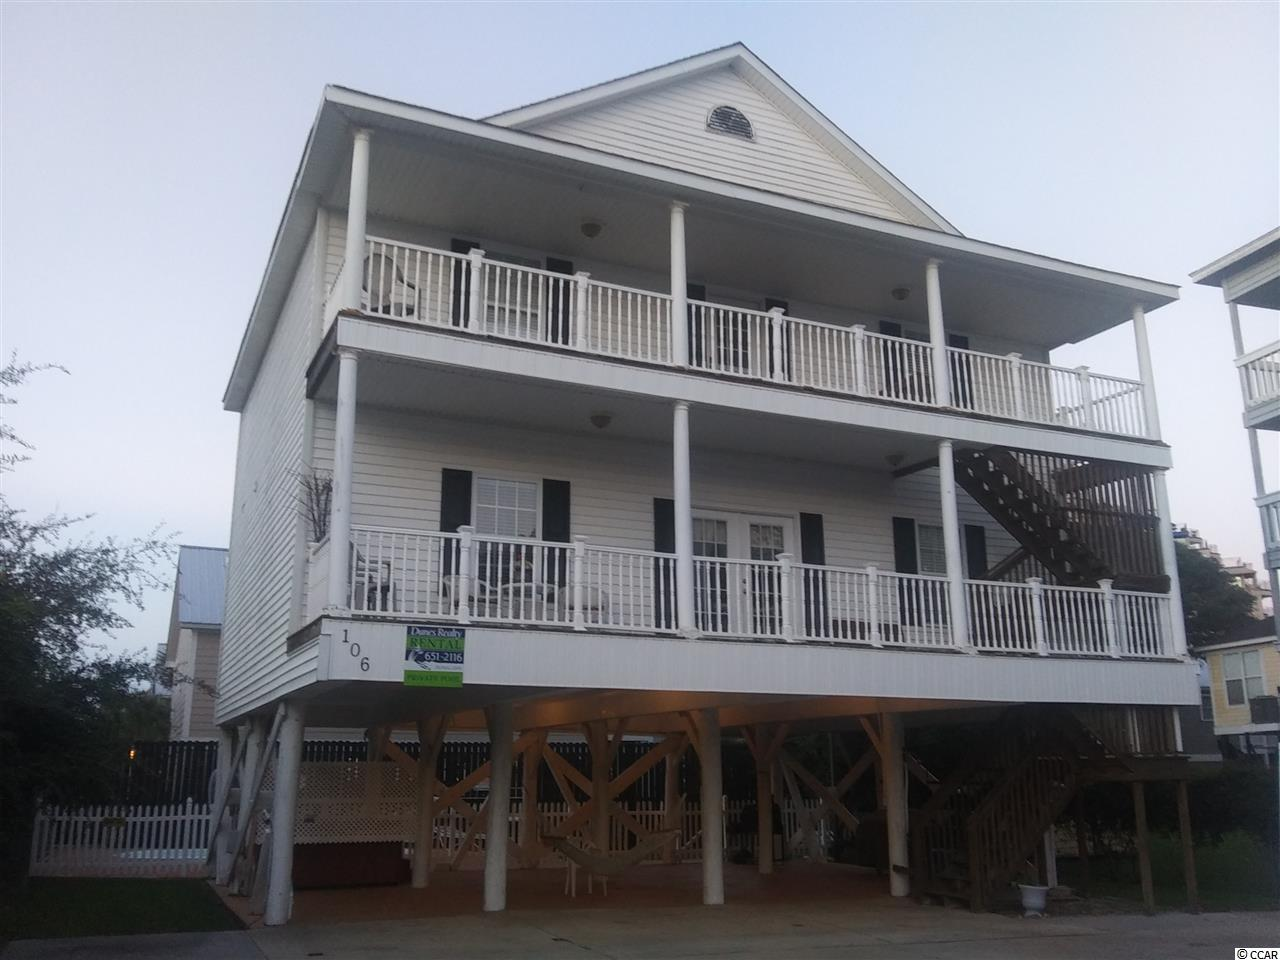 Here it is!! The perfect beach house with lots of room, plenty of parking. Its own pool and hot tub!! 7 beds, 5 and a half baths. Walk to the beach!!! Great for a primary home!! Beach getaway!!! Or a great investment property!! Clean, neat, fully furnished and ready to move in!!!! Call your agent and see it today!!! New paint!! New fridge and dishwasher!!! This home is detached with no HOA or restrictions!!!